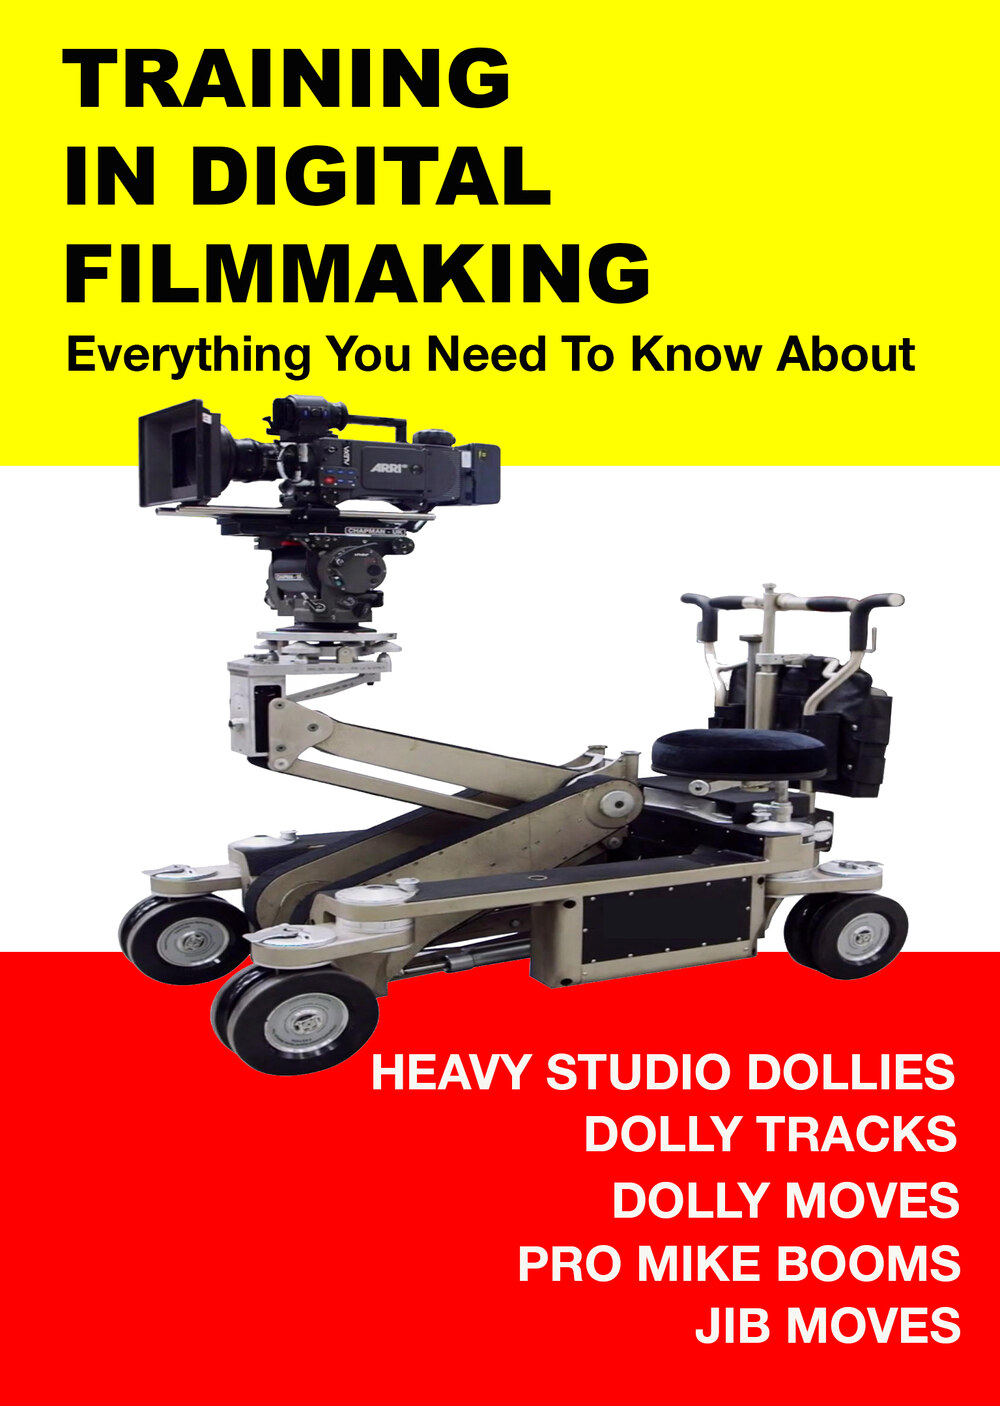 F3002 - Everything You Need to Know About Heavy Studio Dollies, Dolly Tracks, Dolly Moves Pro Mike Booms and Jib Moves